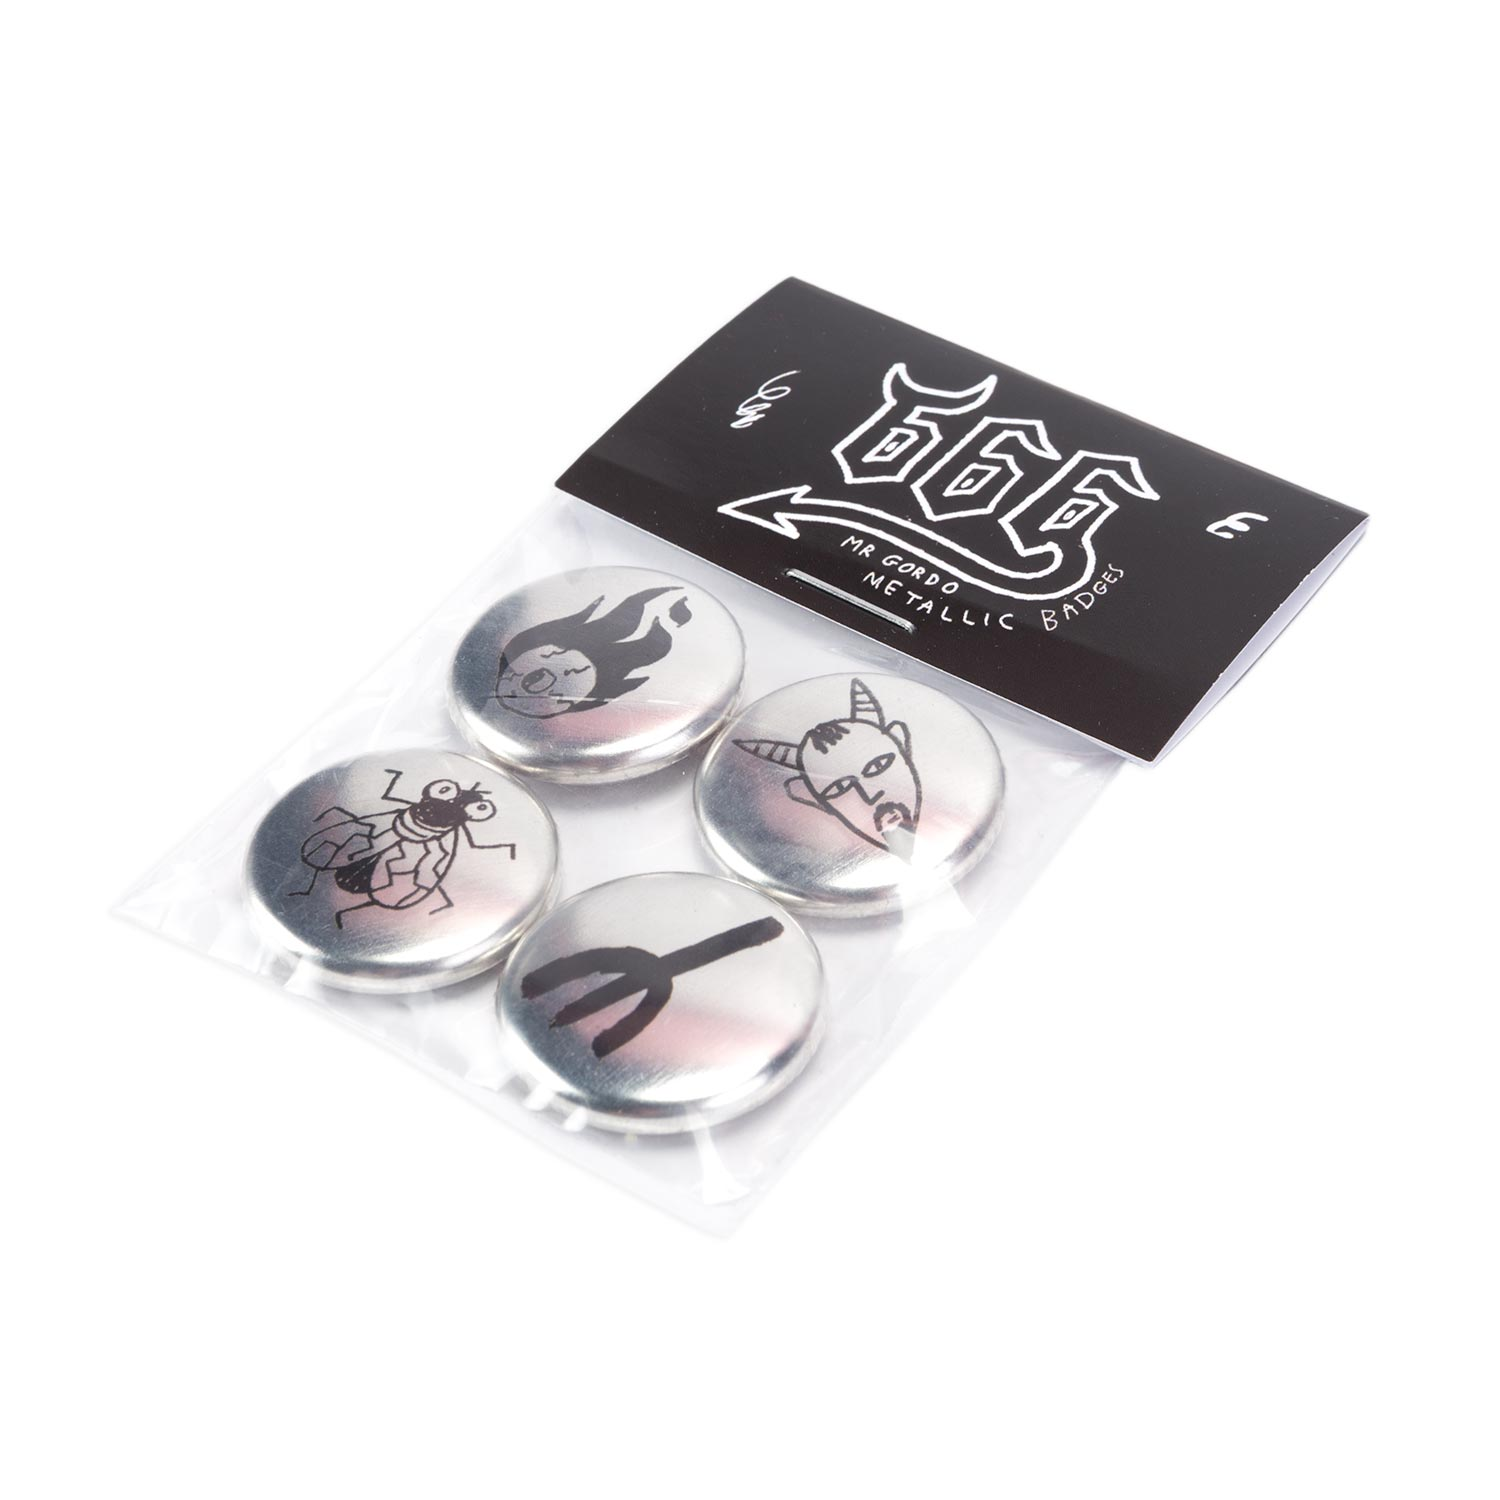 25mm Metallic Badge Packs